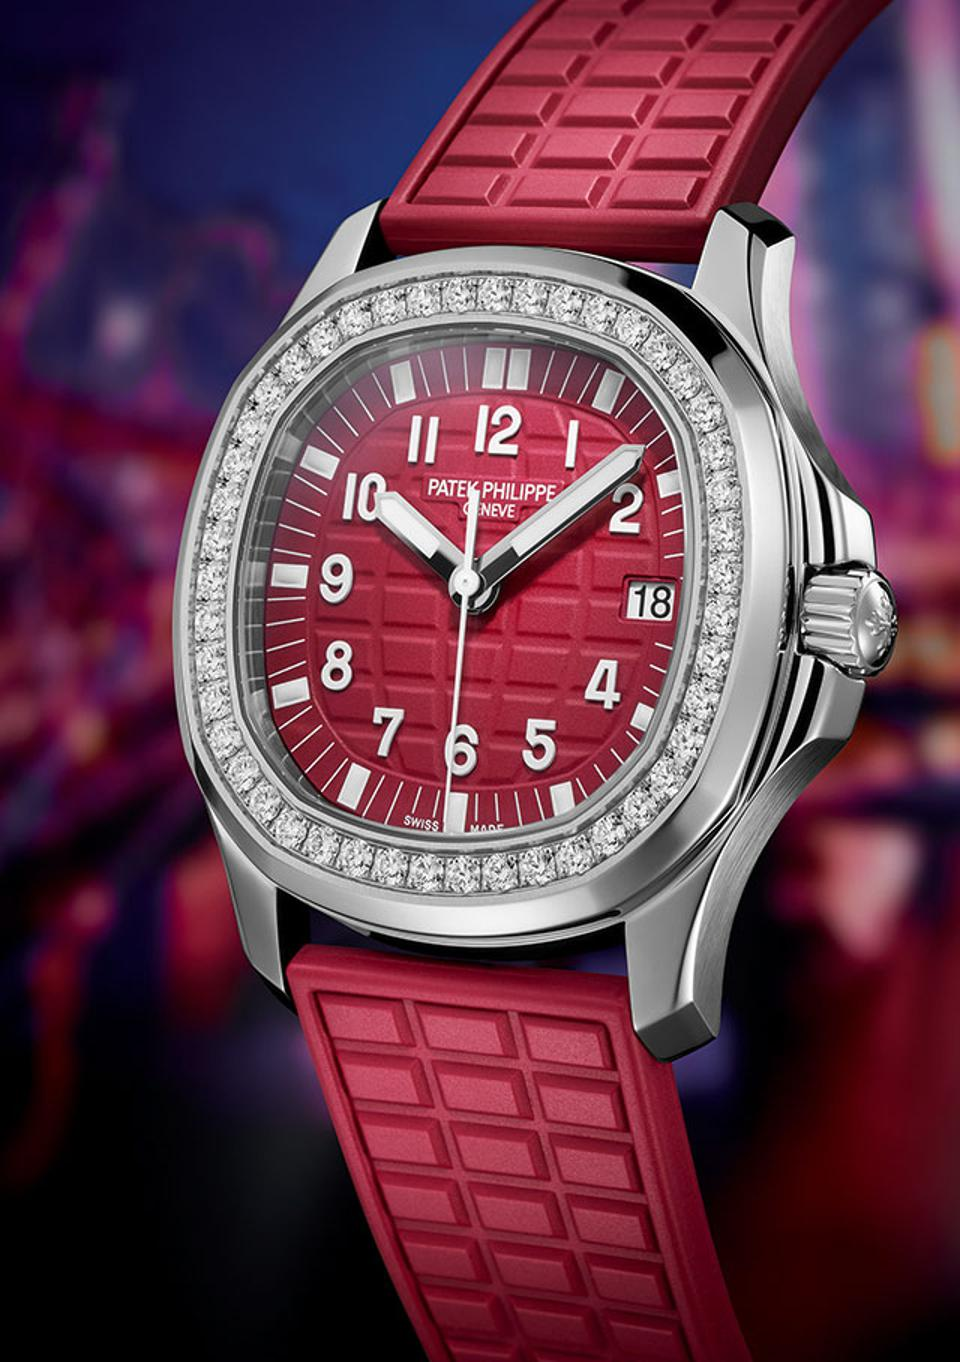 The new Patek Philippe Aquanaut Luce Ref. 5067A, introduced at the Watch Art Grand Exhibition in Singapore.